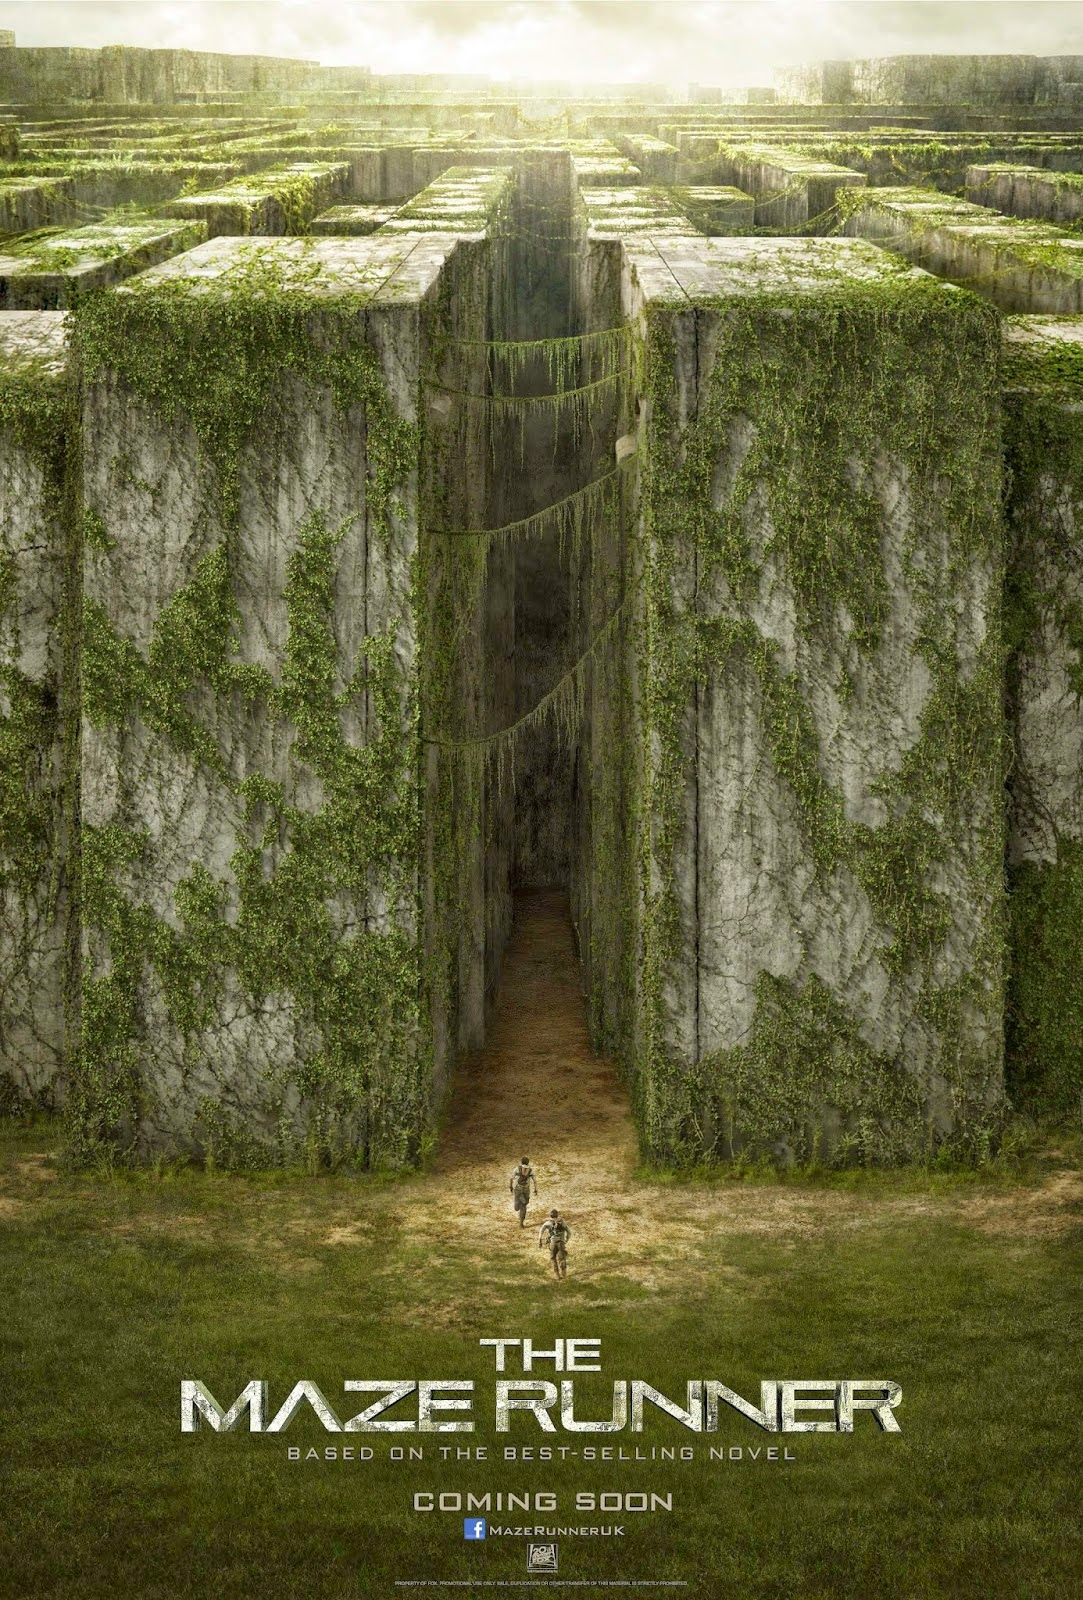 RATH'S REVIEWS: The Maze Runner